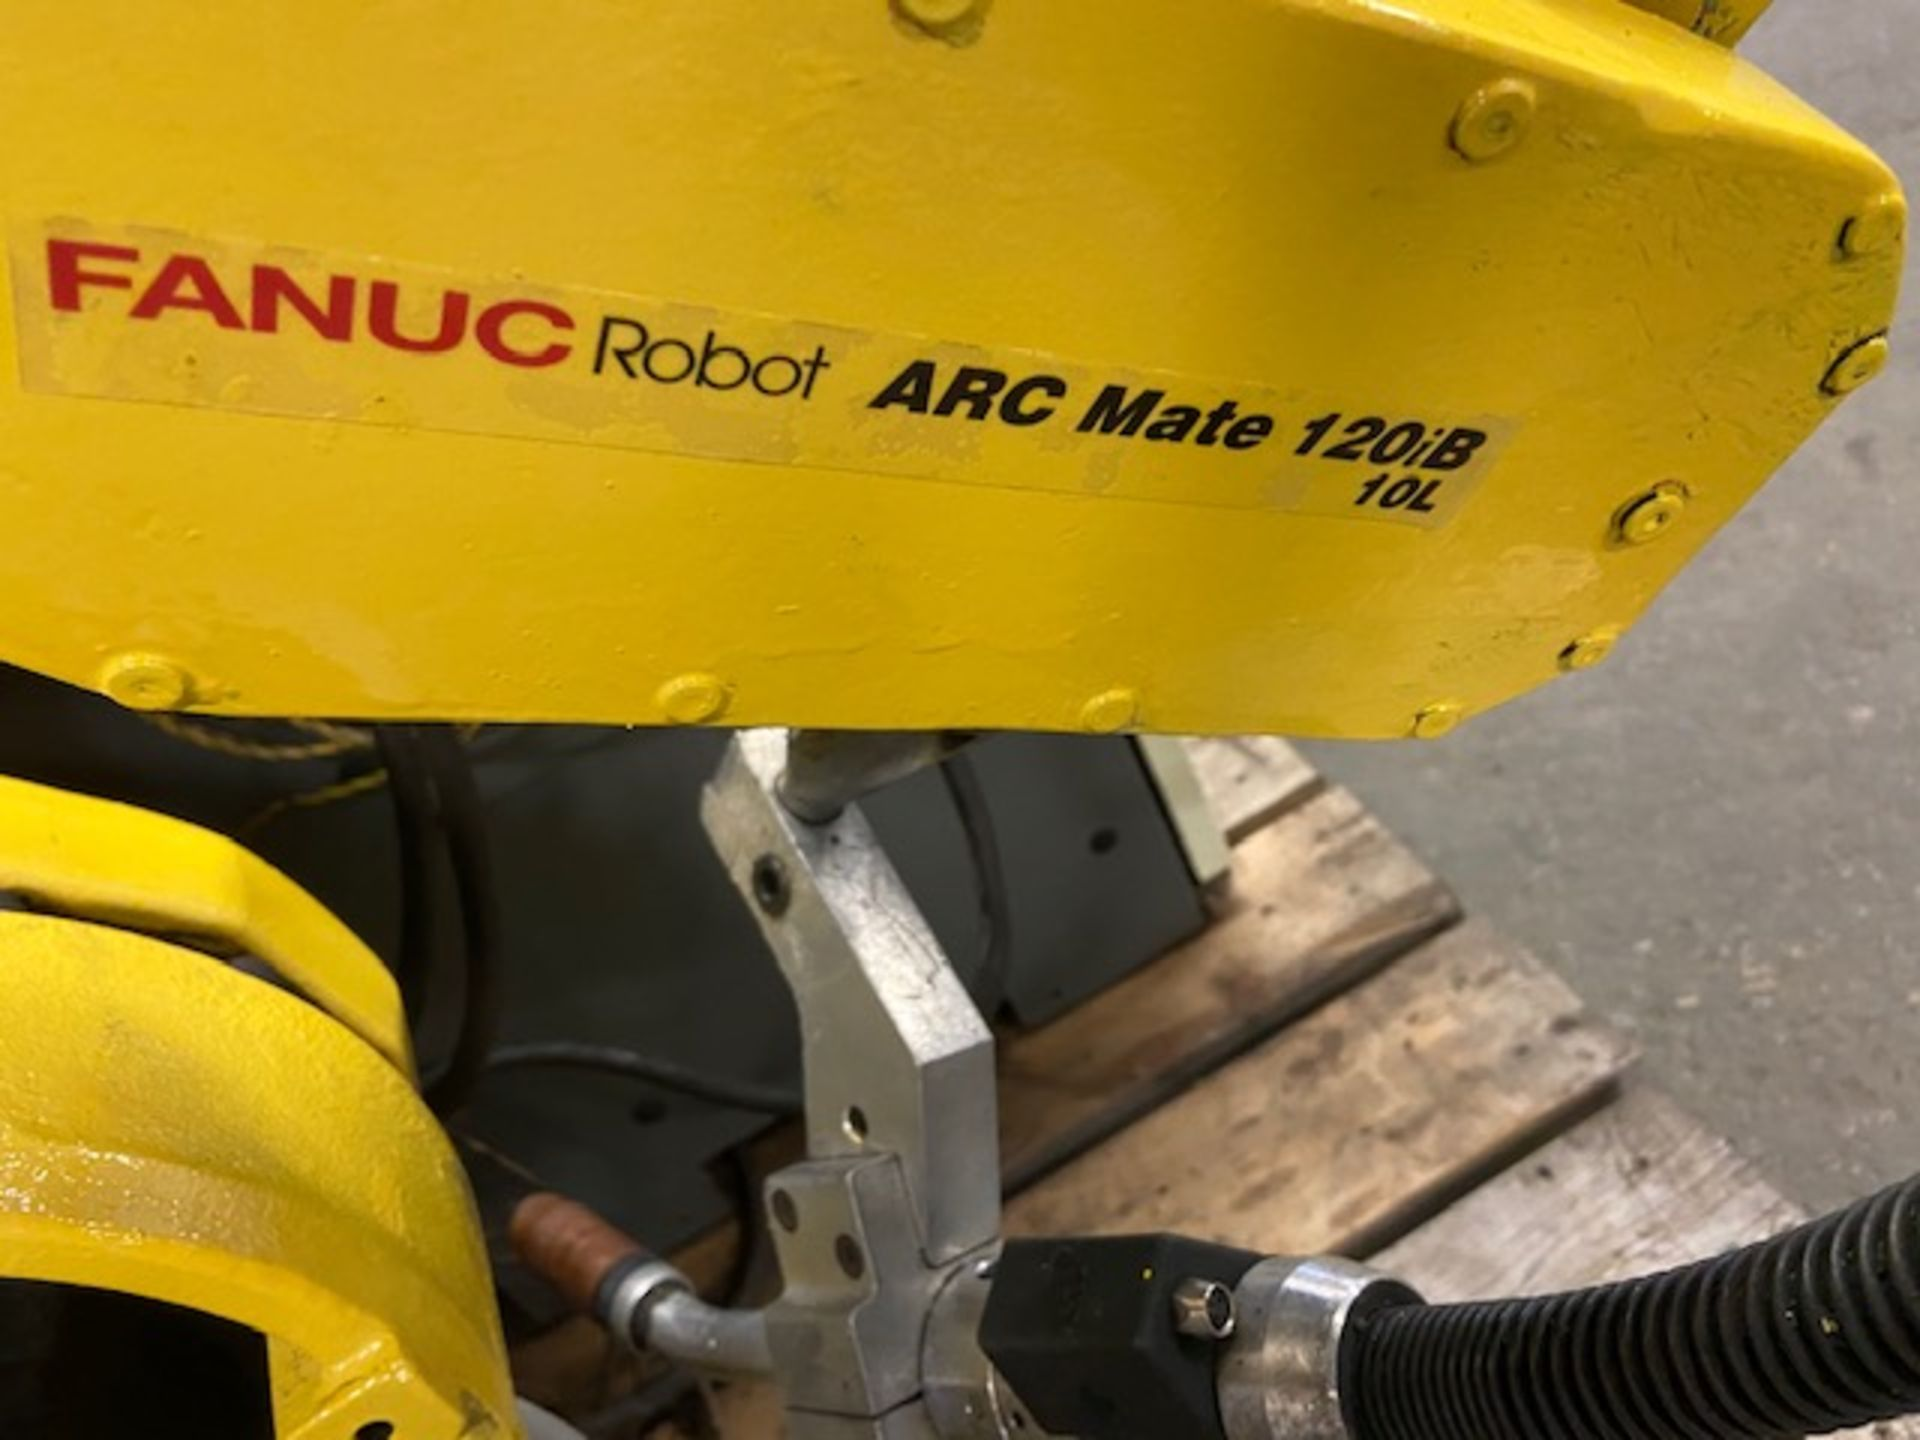 2008 Fanuc Arcmate 120iB / 10L Welding Robot with System FULLY TESTED with R30iA Controller, teach - Image 2 of 5